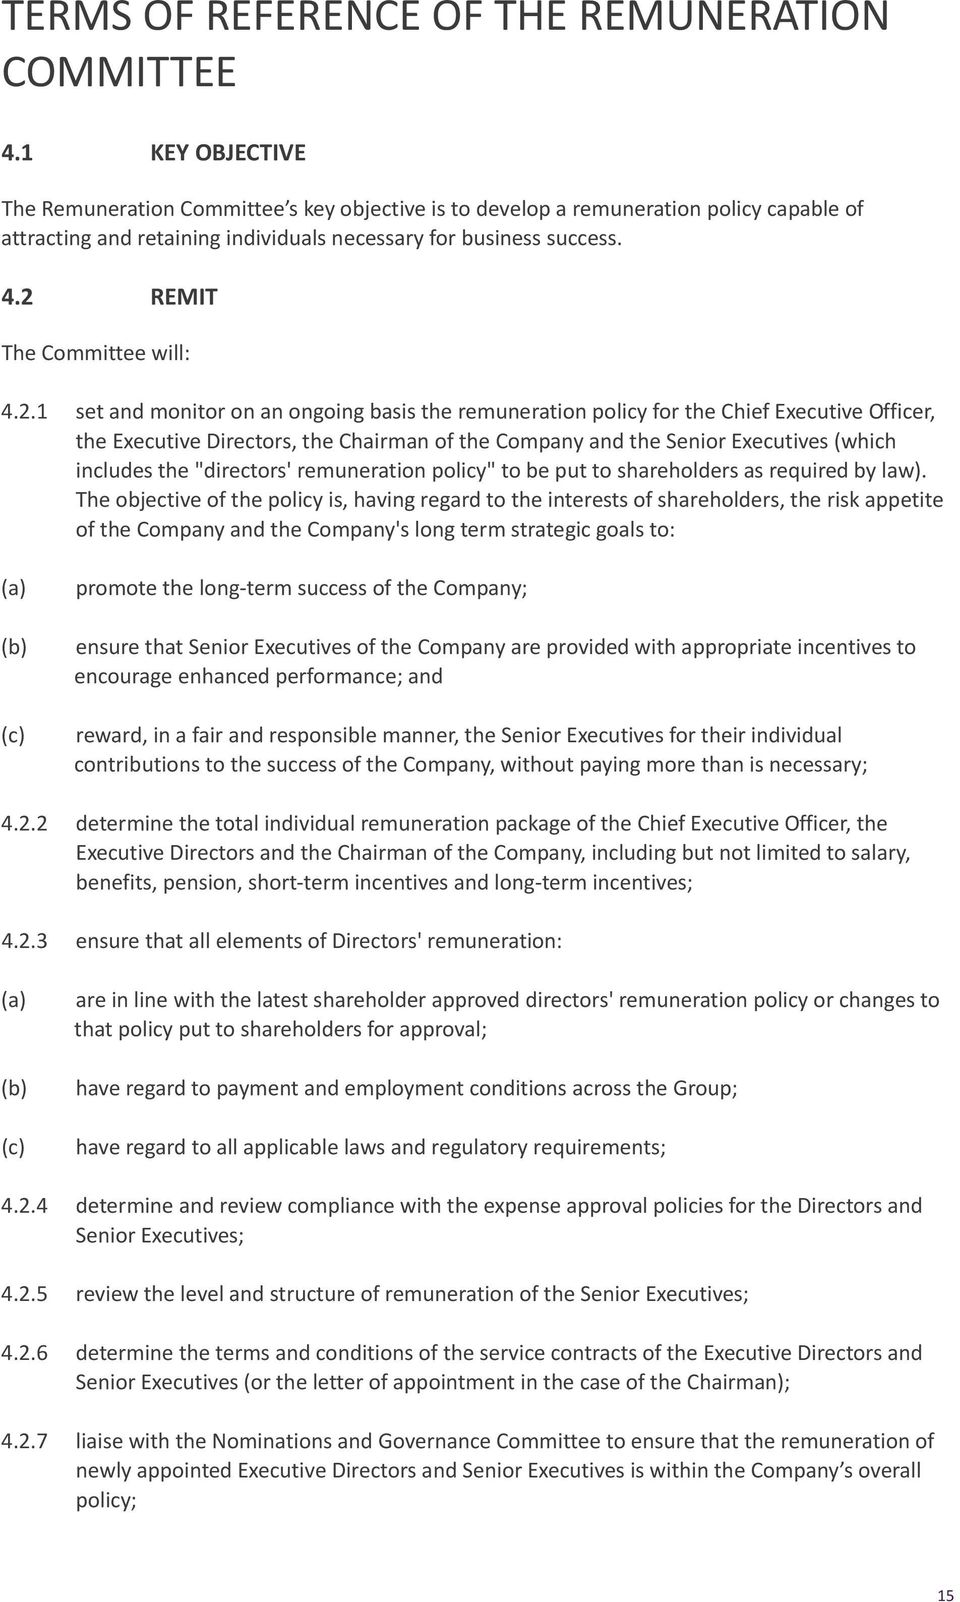 2 REMIT The Committee will: 4.2.1 set and monitor on an ongoing basis the remuneration policy for the Chief Executive Officer, the Executive Directors, the Chairman of the Company and the Senior